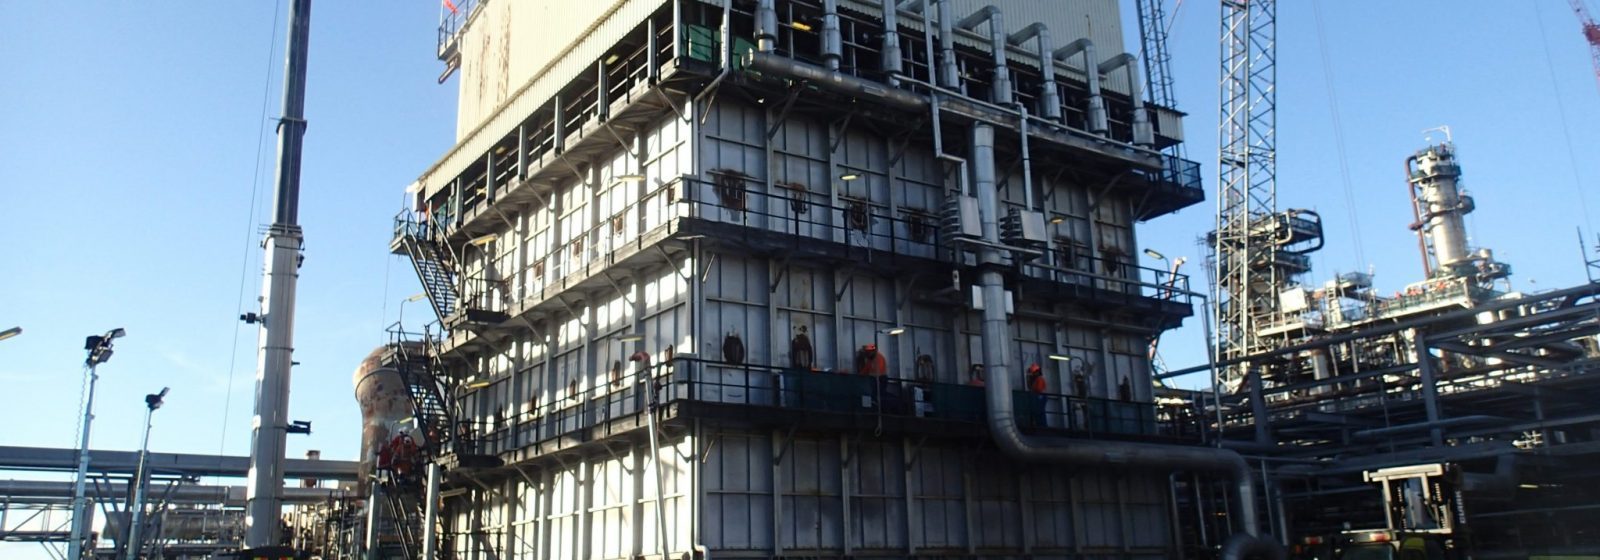 Structural Durability and Rehabilitation - Header Image